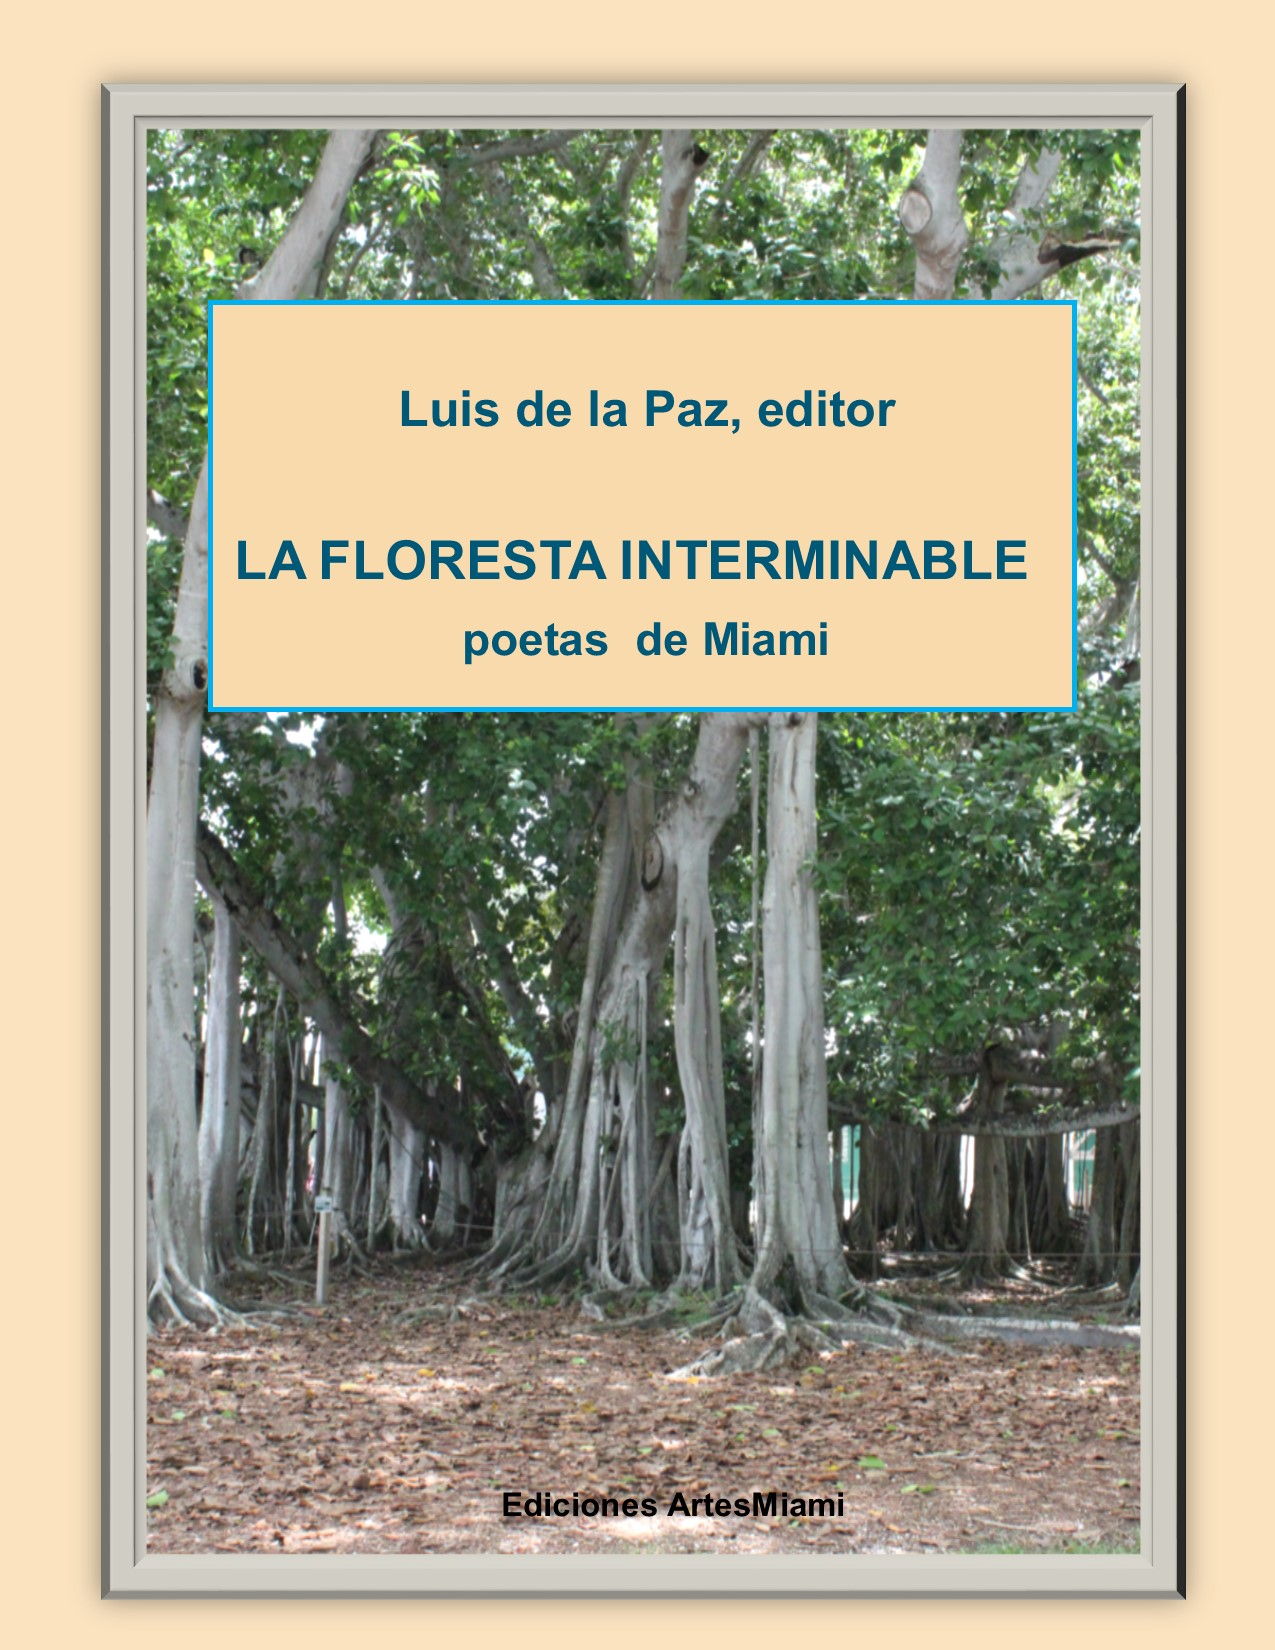 La Floresta Interminable is the most recent collection of Miami Hispanic poetry